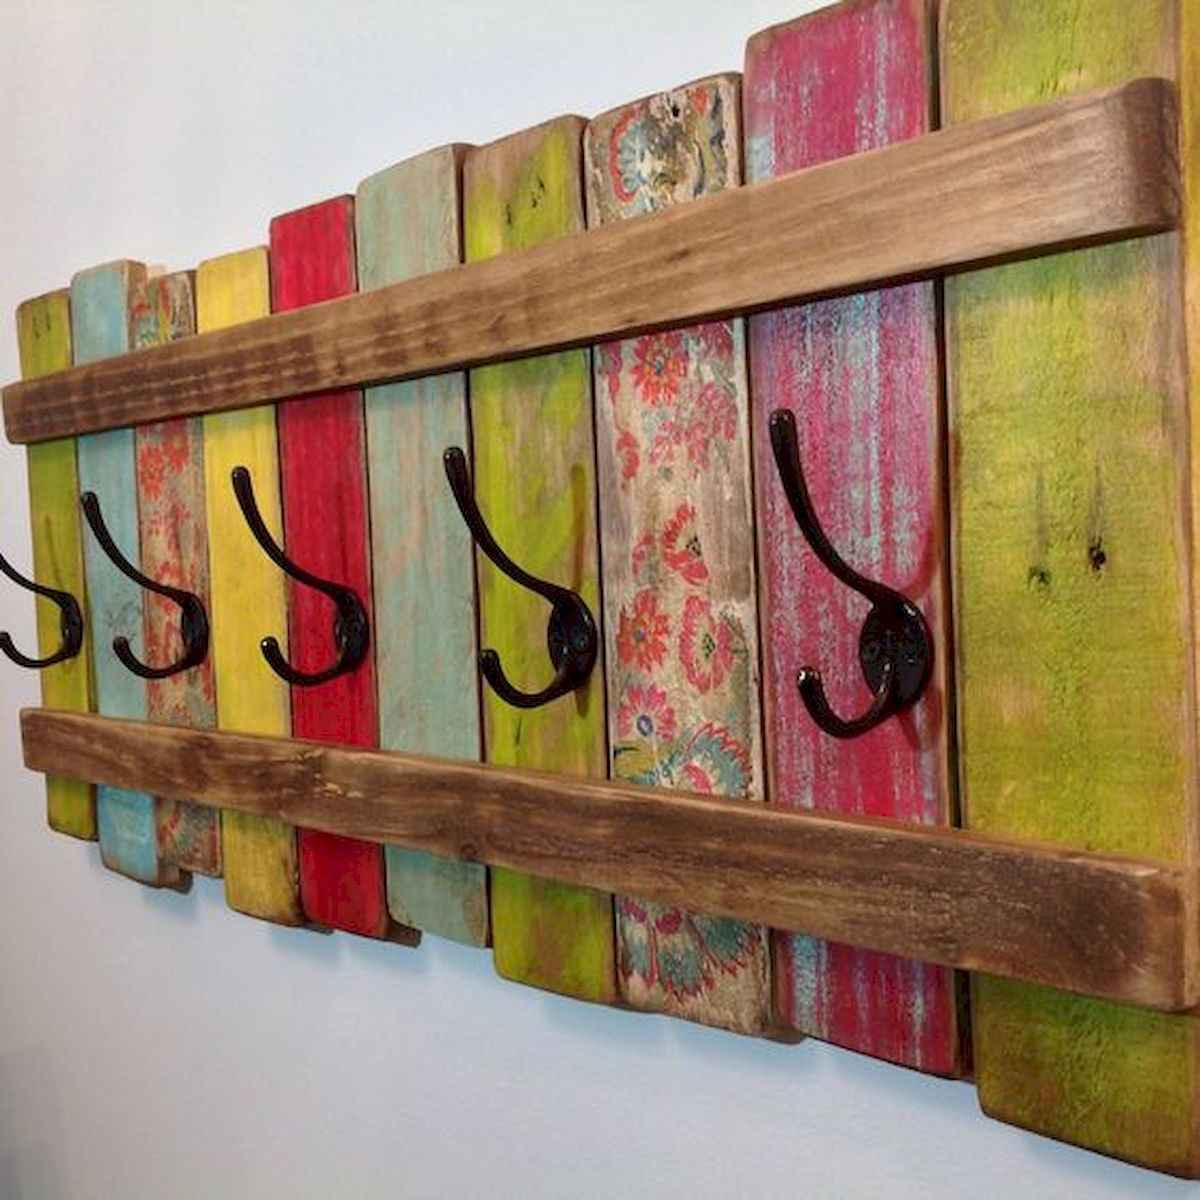 40 Fantastic Easy Crafts DIY Projects Ideas To Make Money (29)